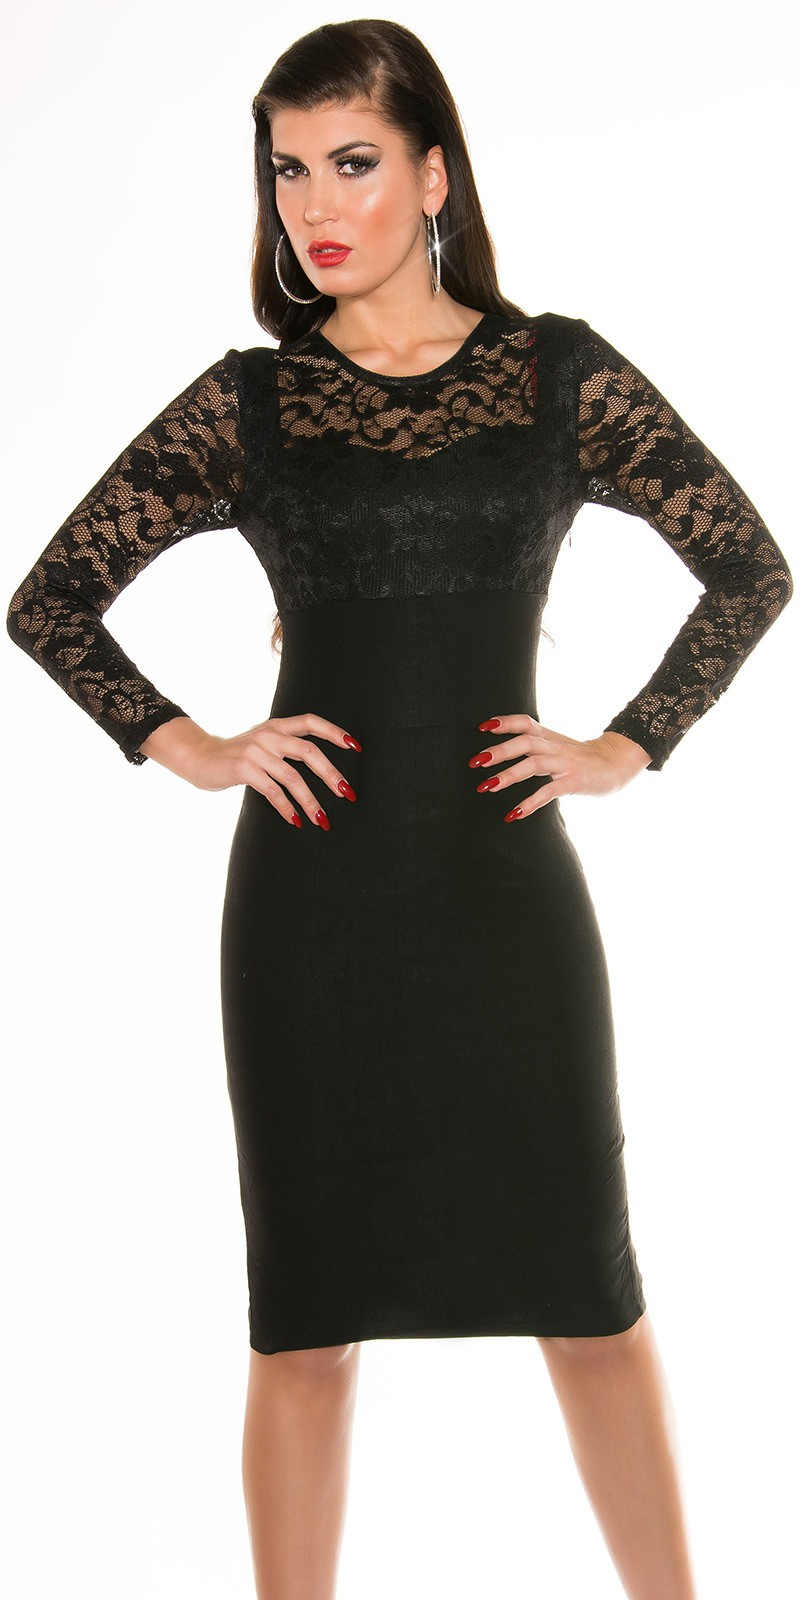 ooKouCla Pencildress with lace  Color BLACK Size 14 0000K9111 SCHWARZ 48.  Midi spolocenske saty s cipkou f34d33104a9